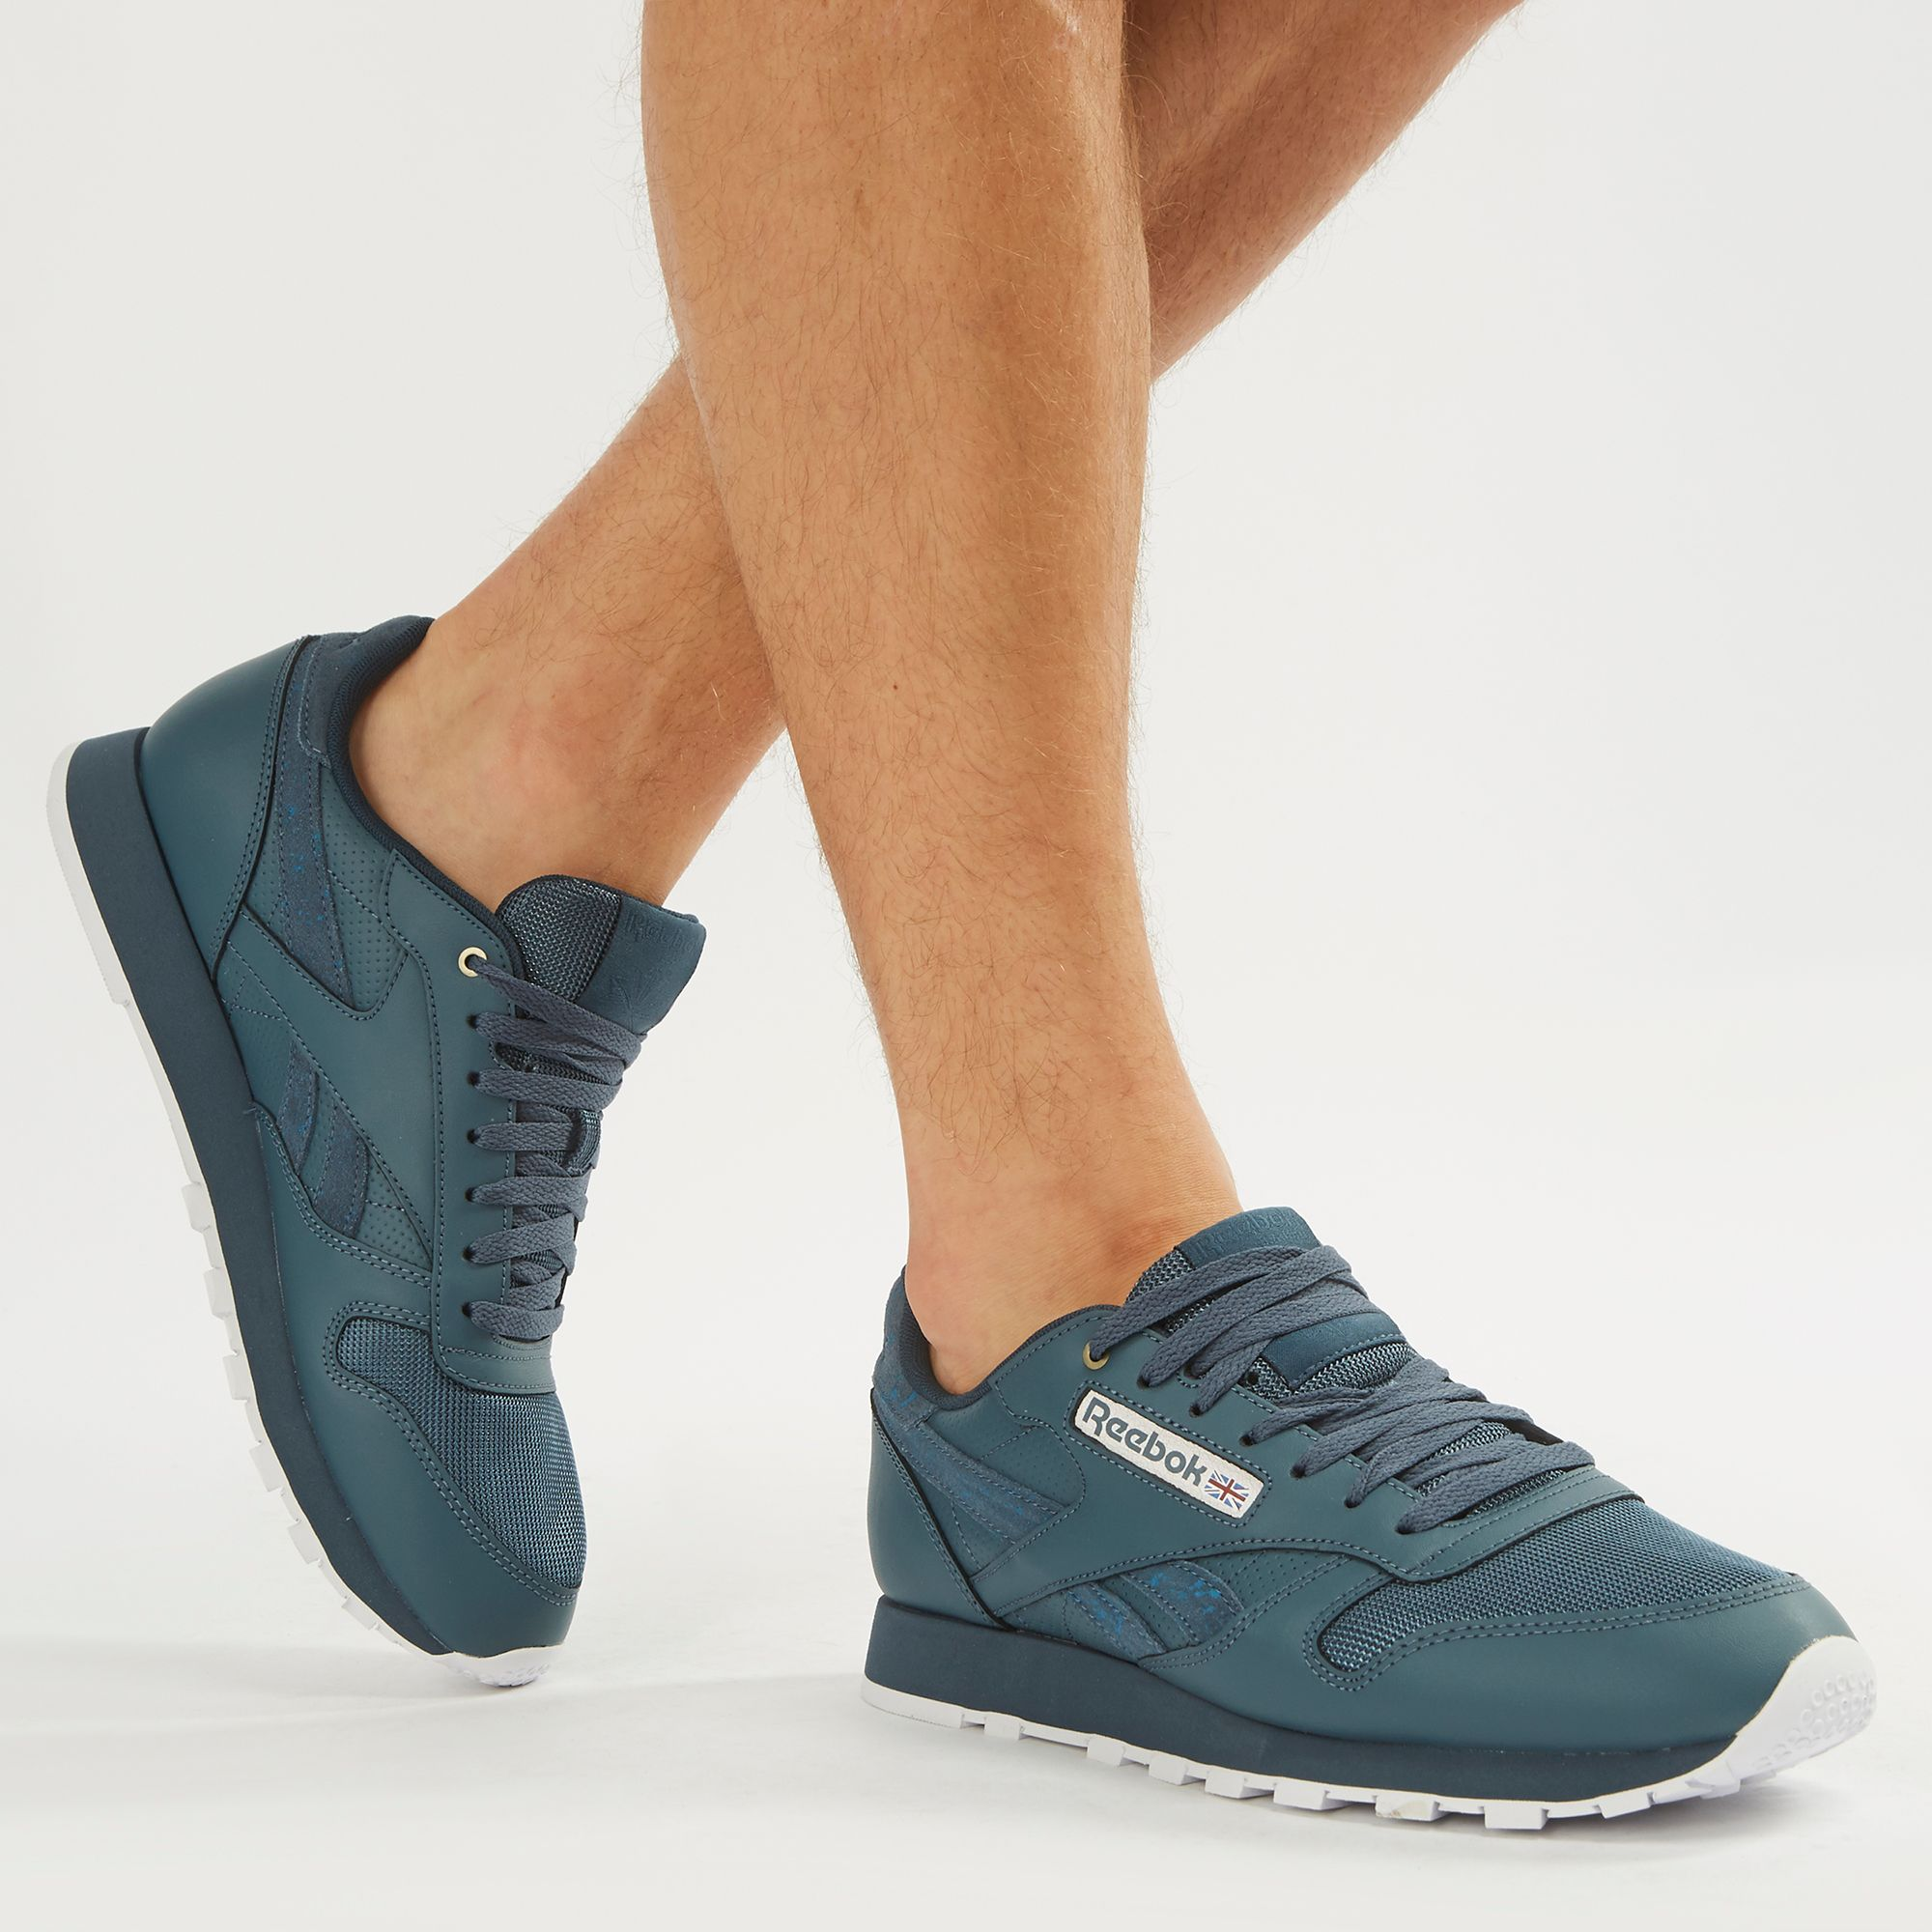 Reebok Classic Leather Montana Cans Shoe | Sneakers | Shoes